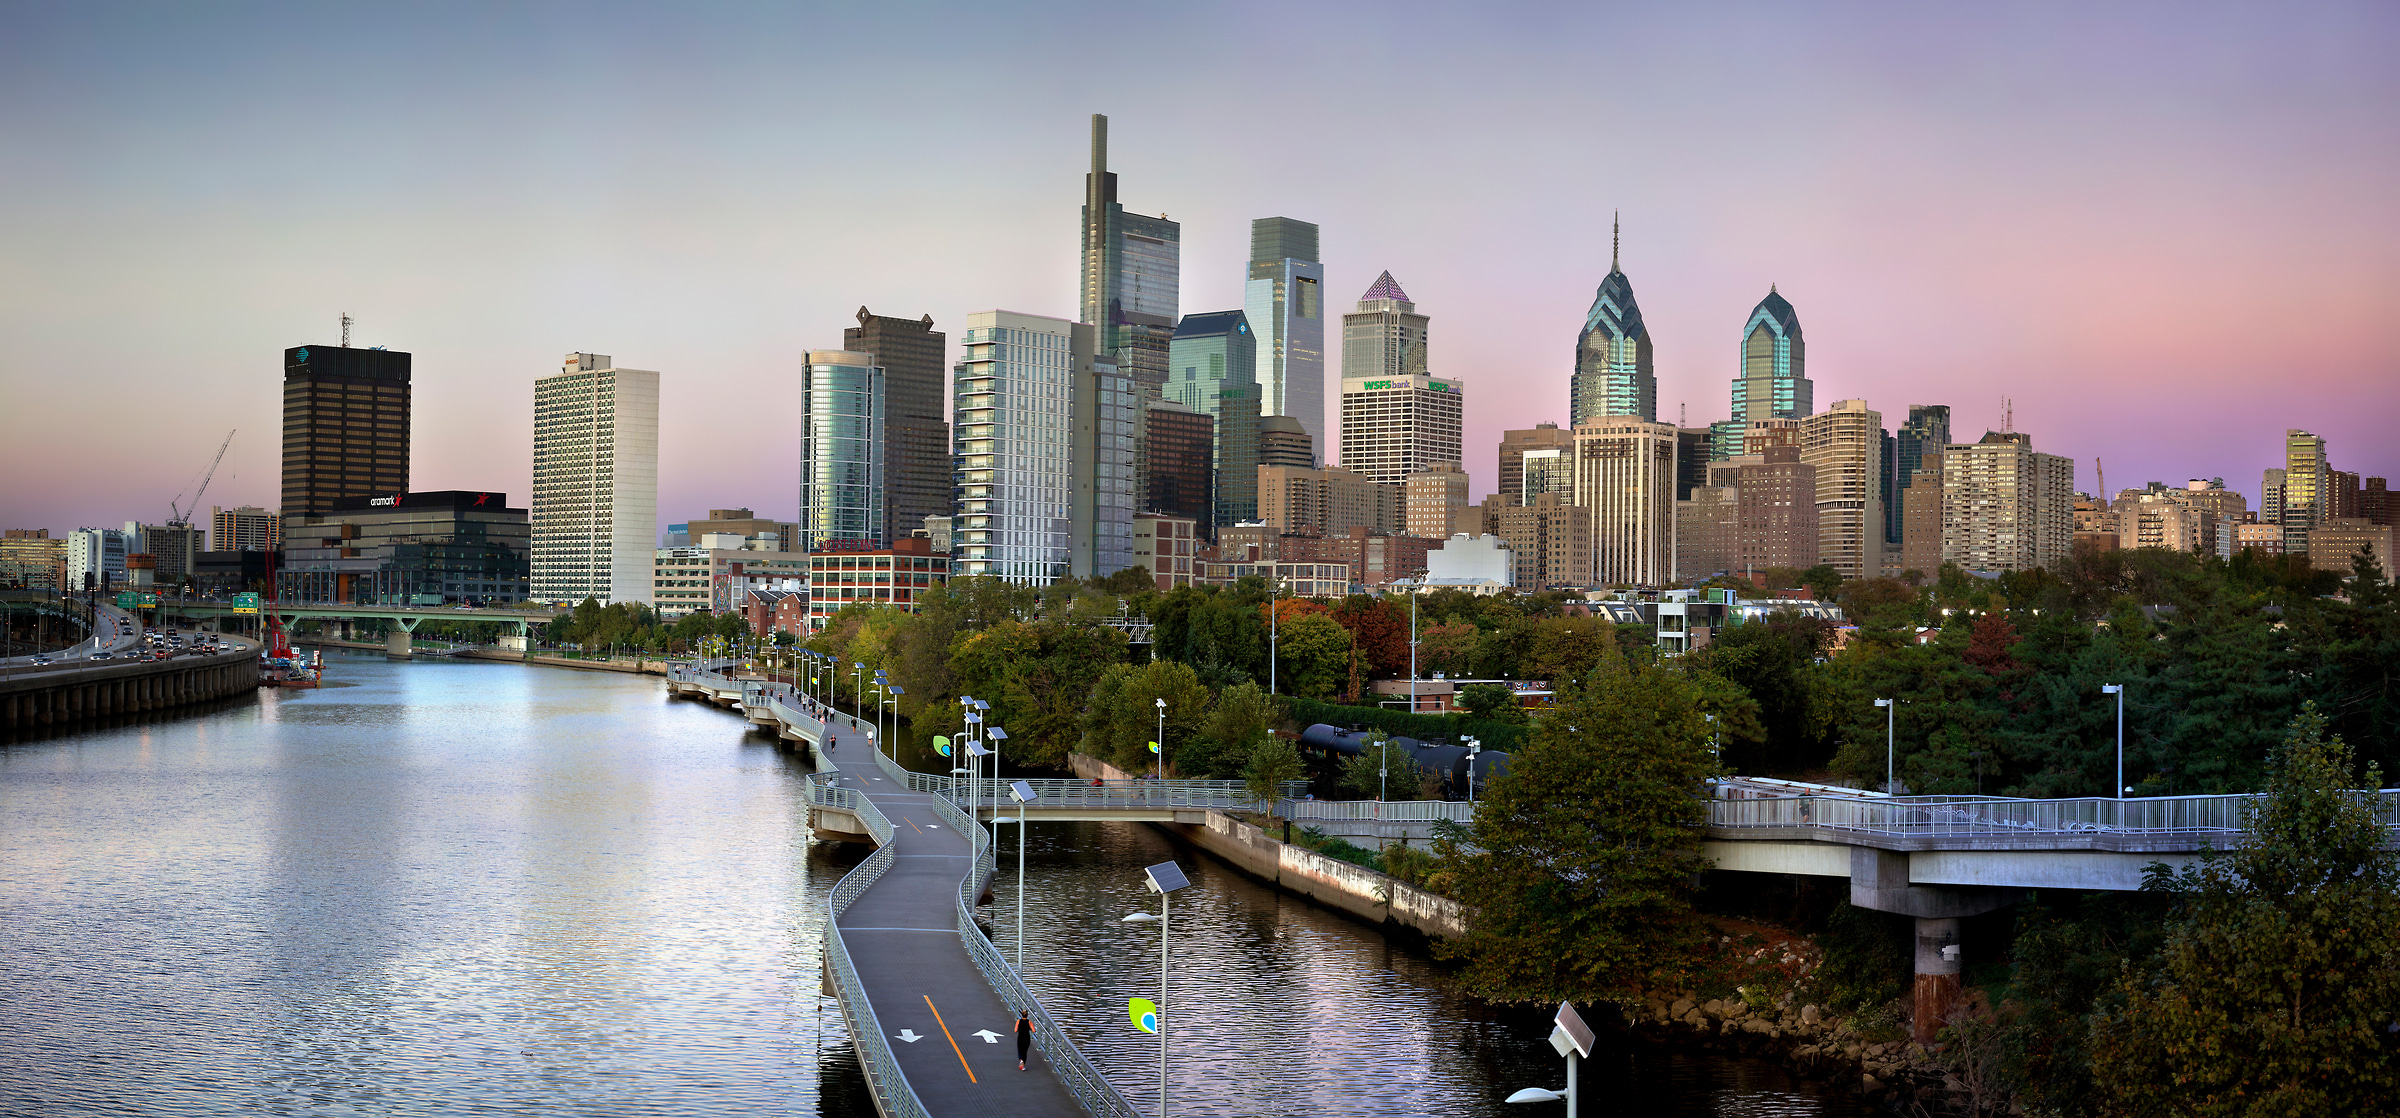 419 megapixels! A very high resolution, large-format VAST photo print of the Philadelphia skyline; photograph created by Phil Crawshay in Downtown Philadelphia